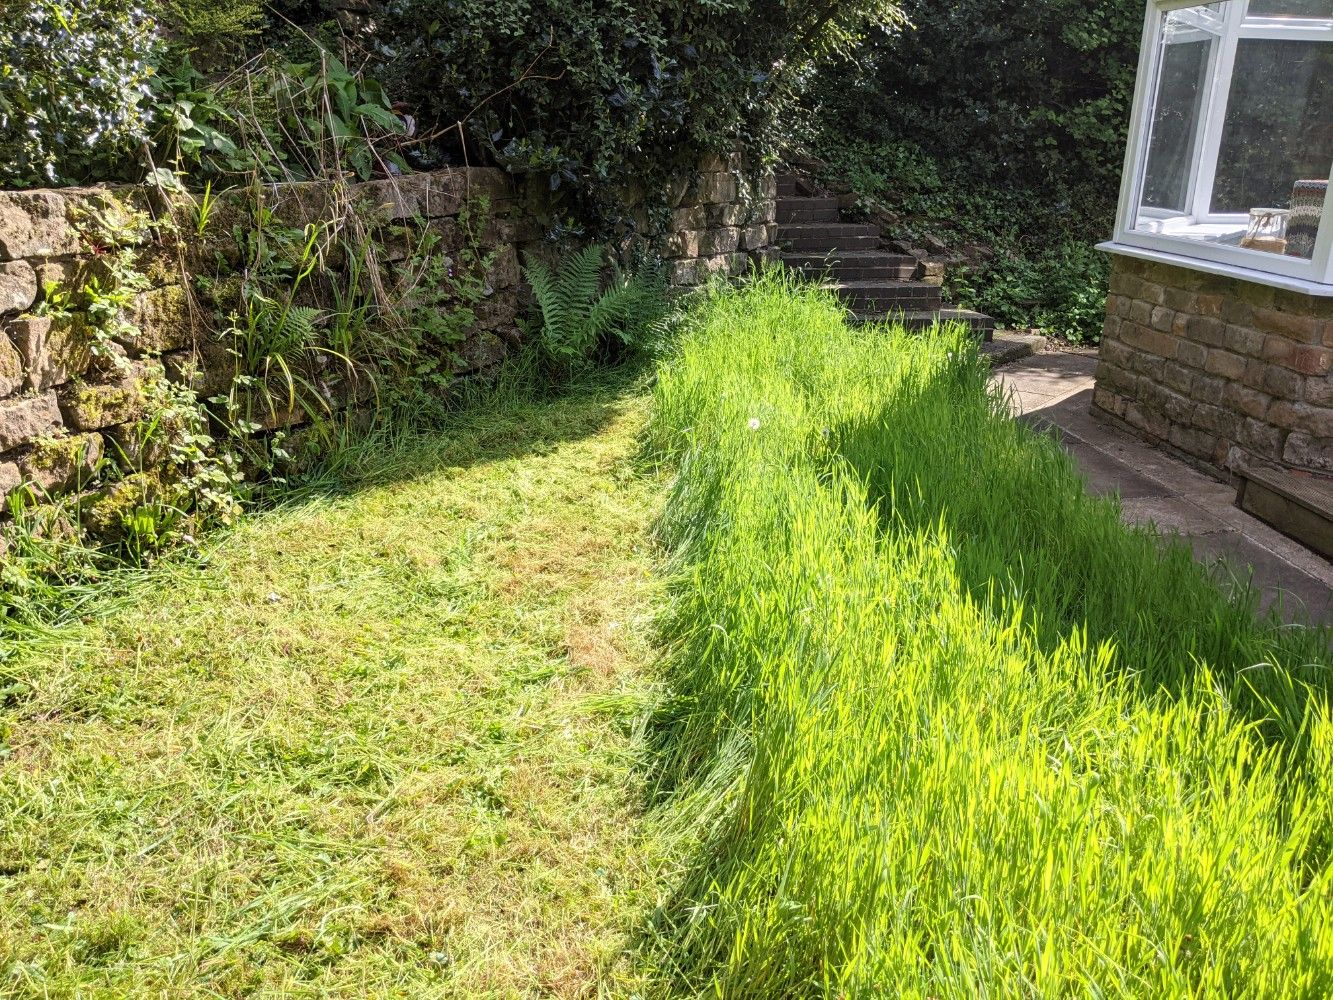 A side-by-side photo of the freshly mown lawn, showing a very stark contrast between the freshly mown grass, and the very tall grass that has not yet been mown